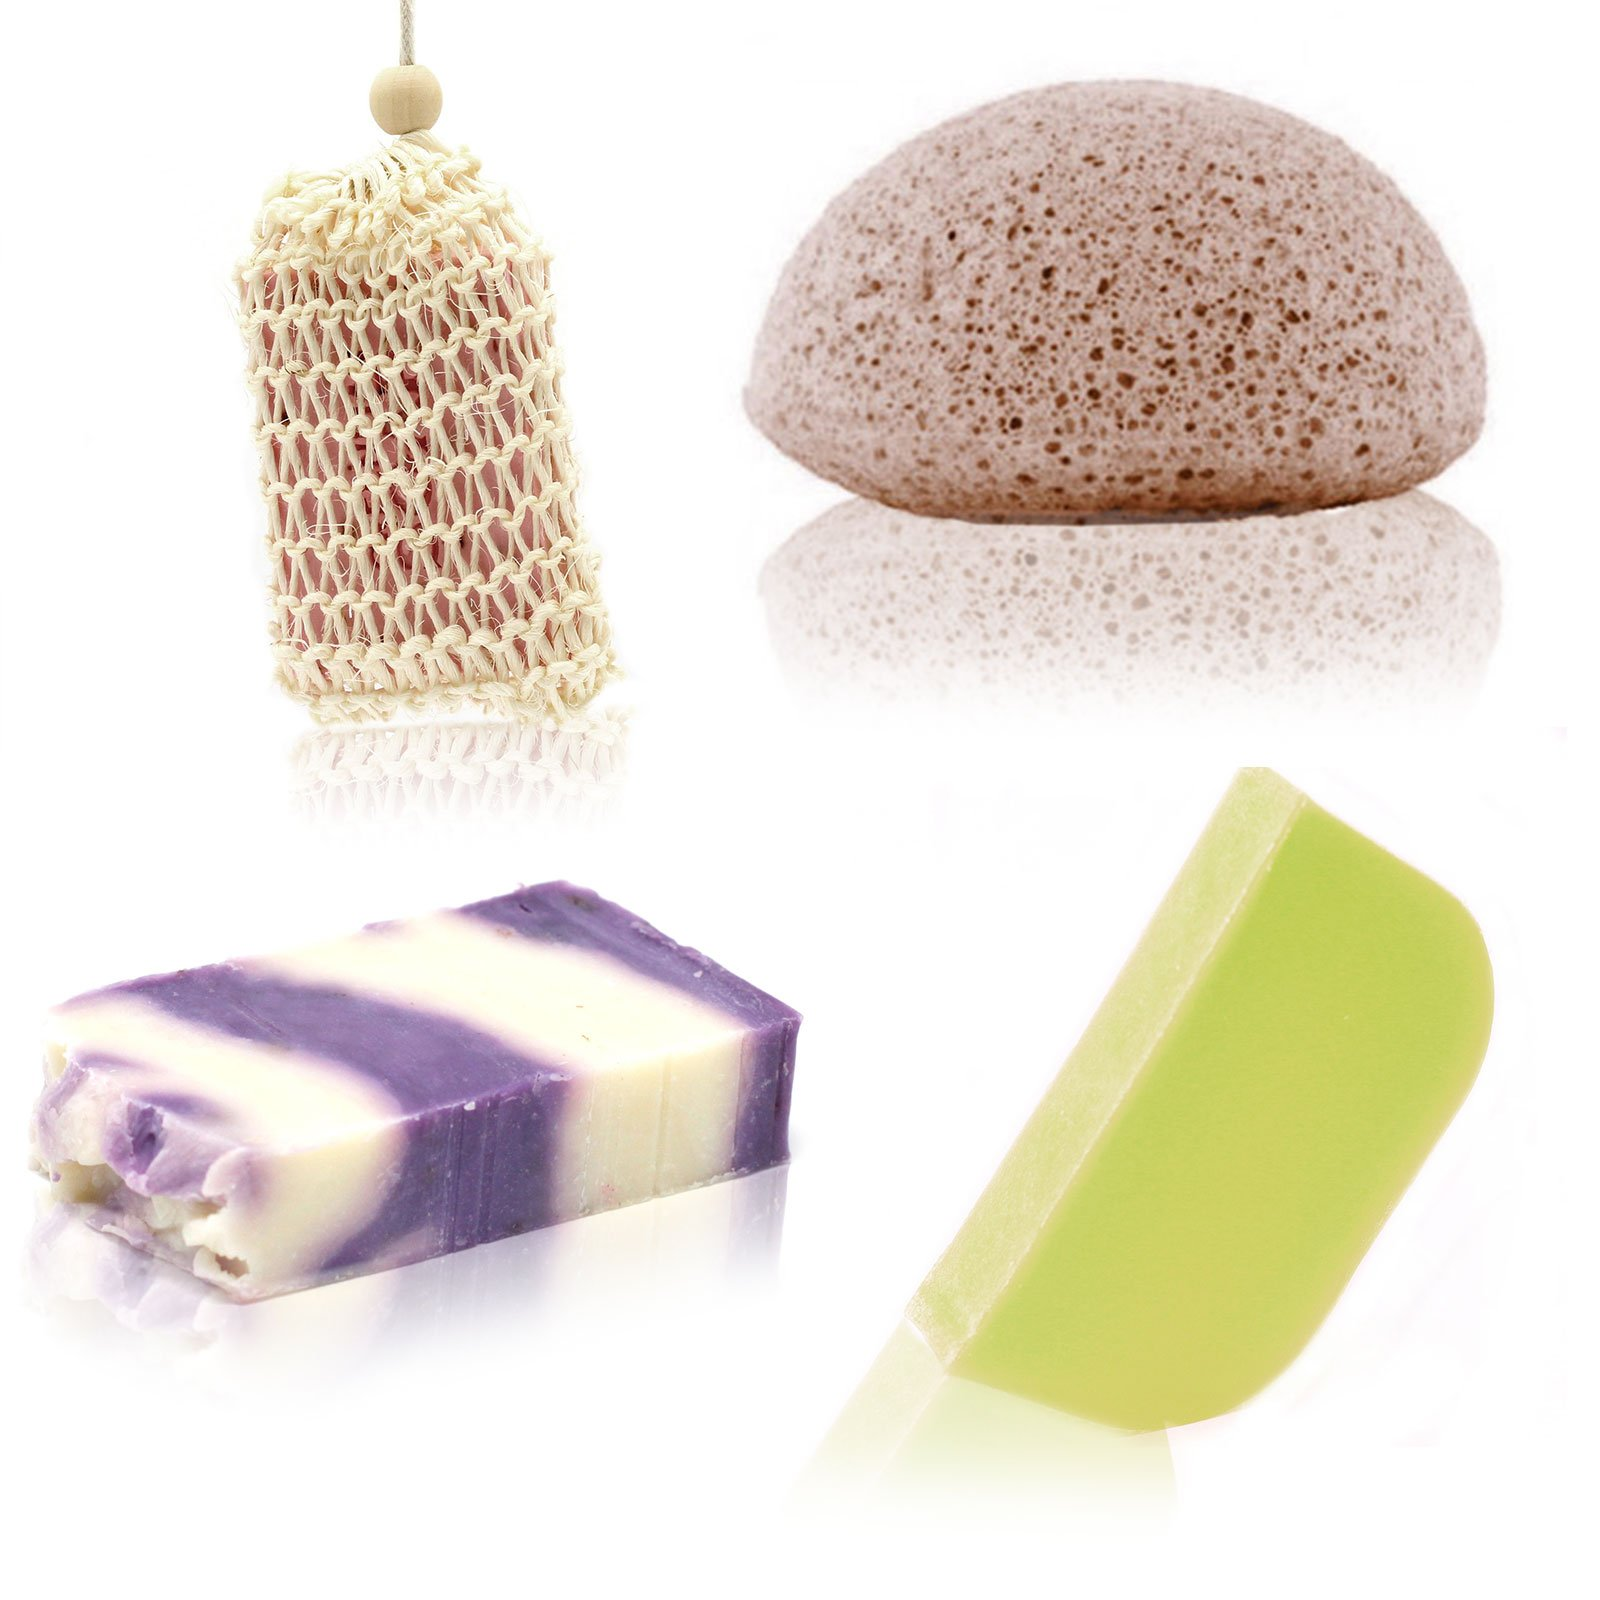 Soap Solid Shampoo And Sponge Treat Box